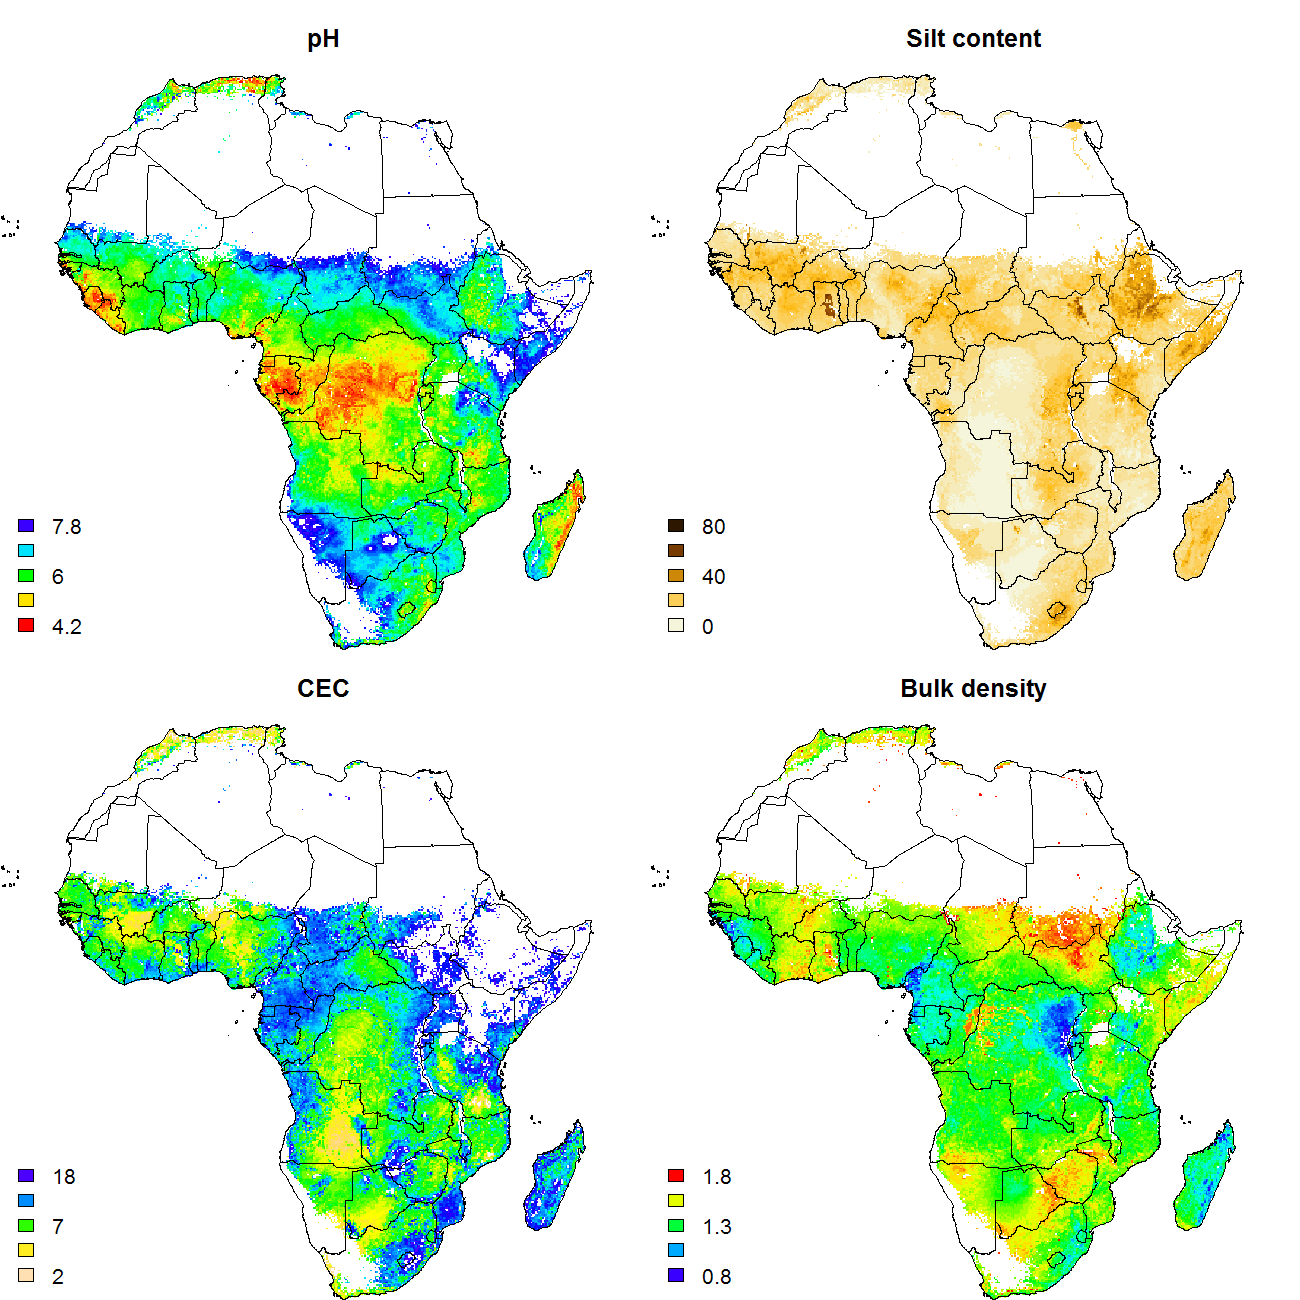 New generation soil property maps for Africa